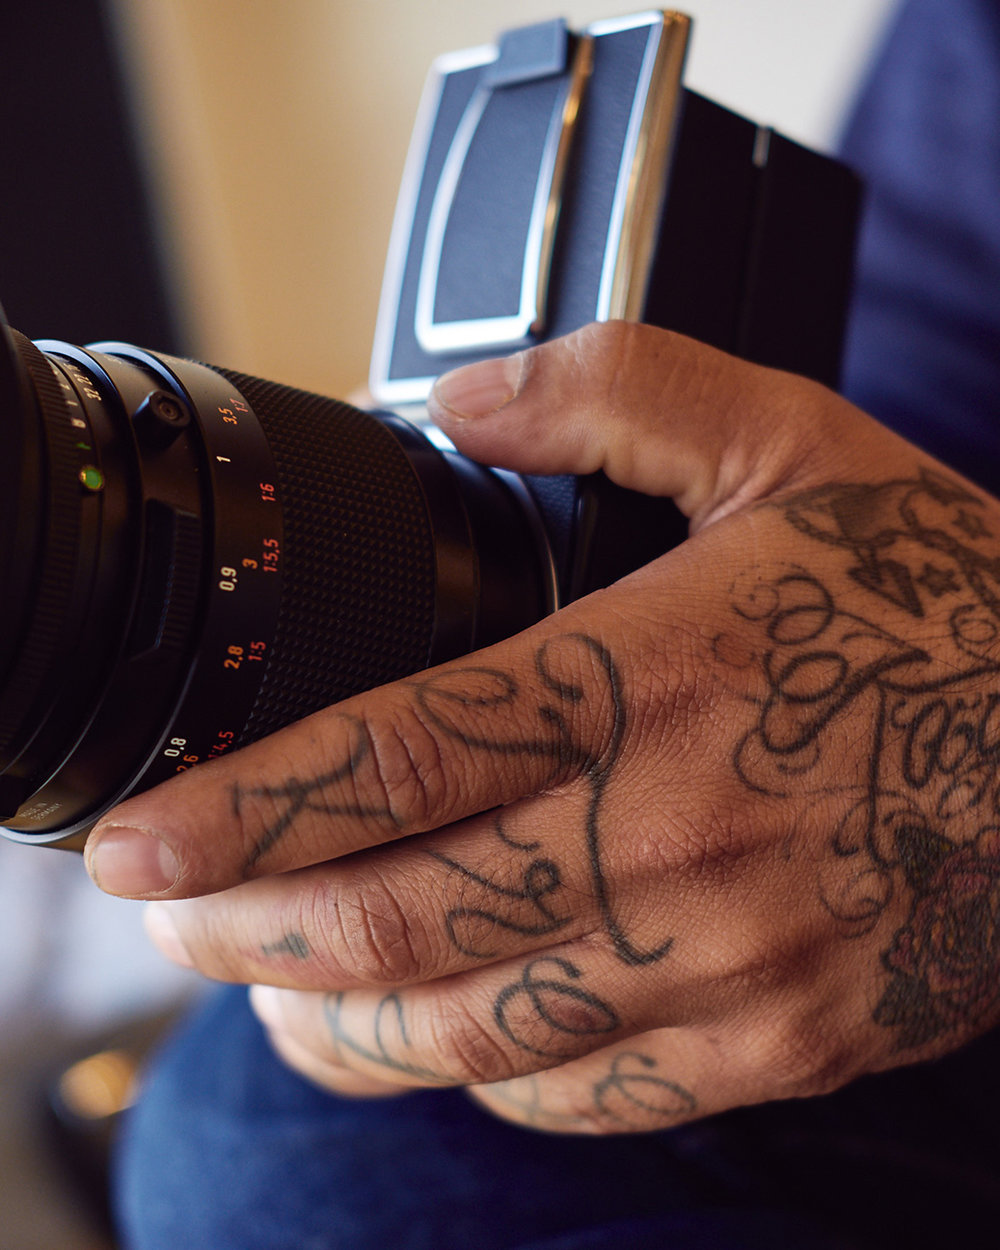 hasselblad cameras and hands with tattoos